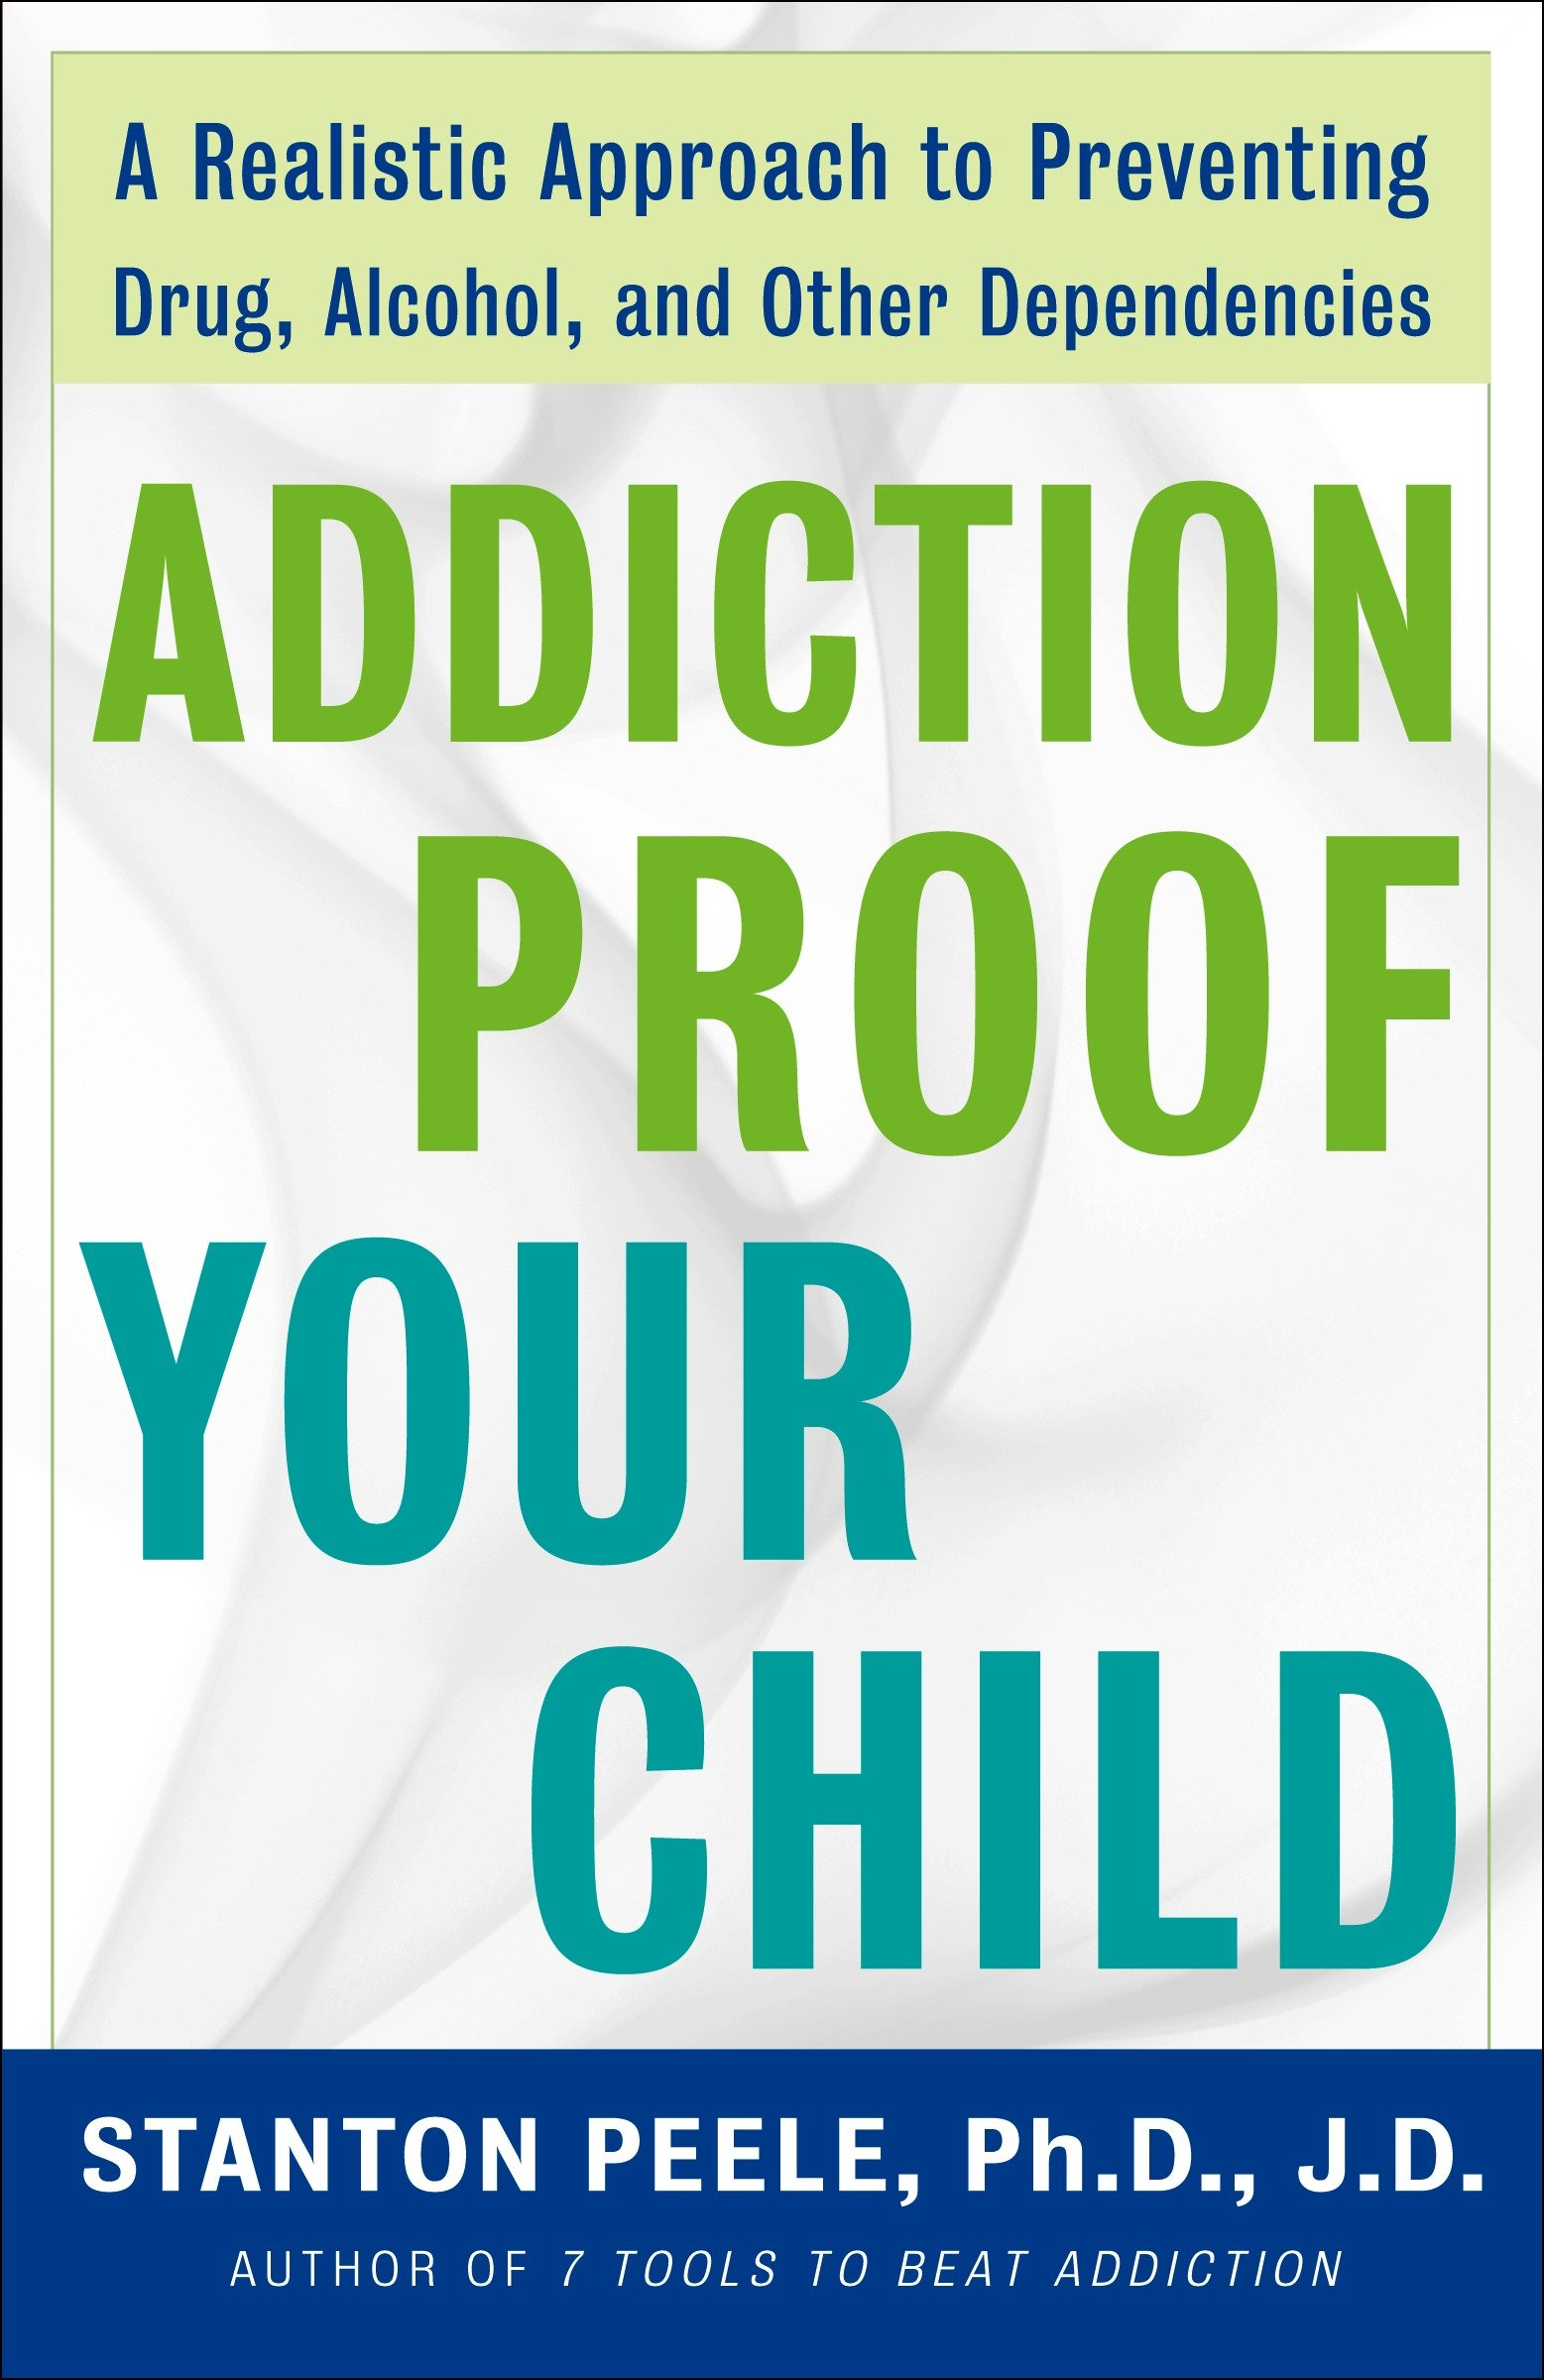 Addiction Proof Your Child A Realistic Approach to Preventing Drug, Alcohol, and Other Dependencies